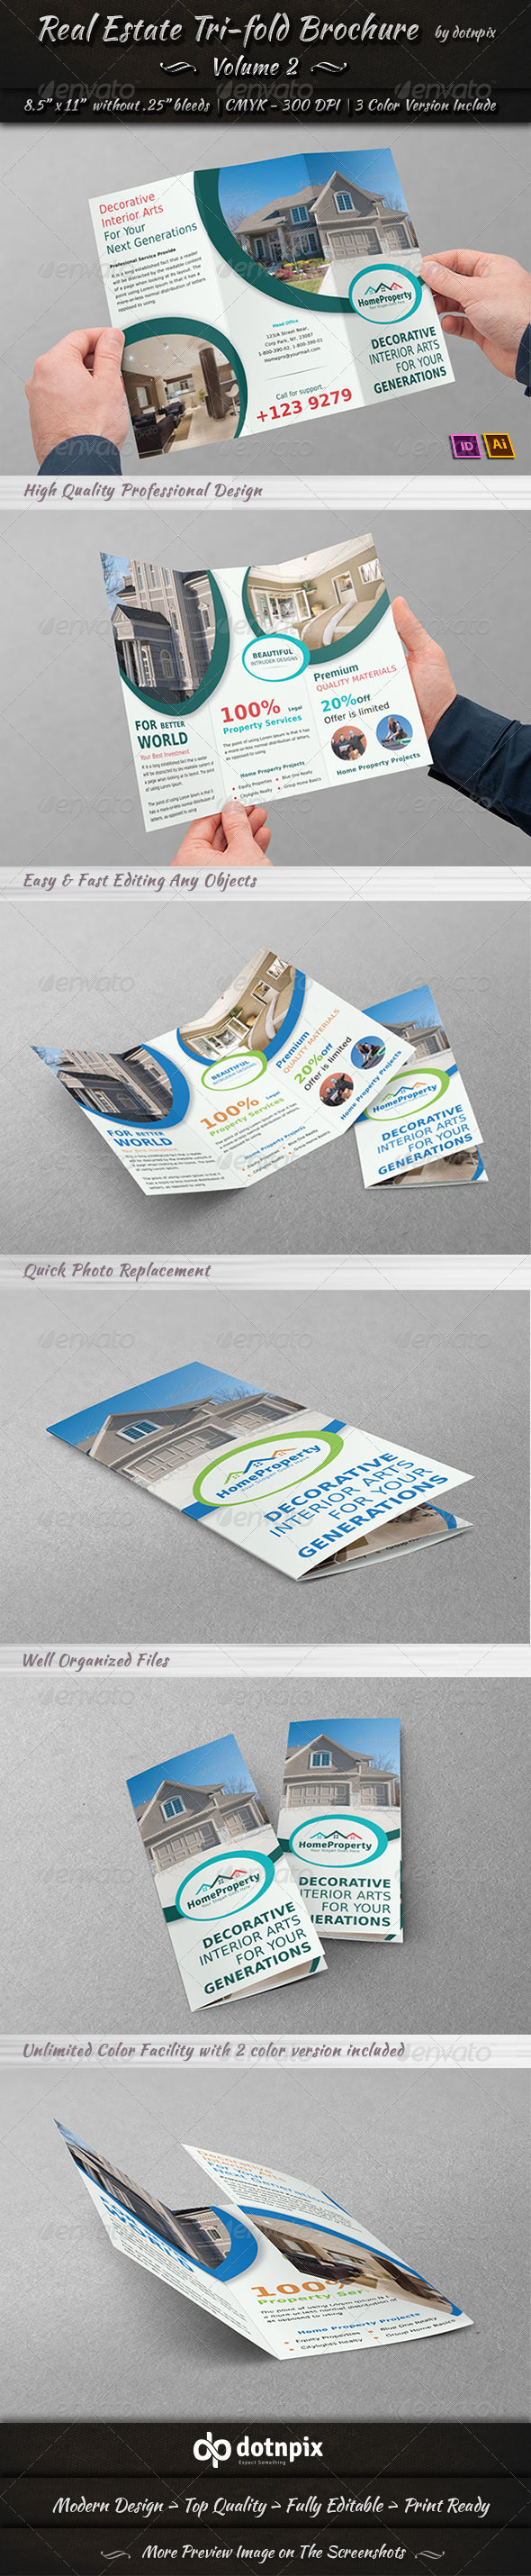 Real Estate Business TriFold Brochure | Volume 2 - Corporate Brochures